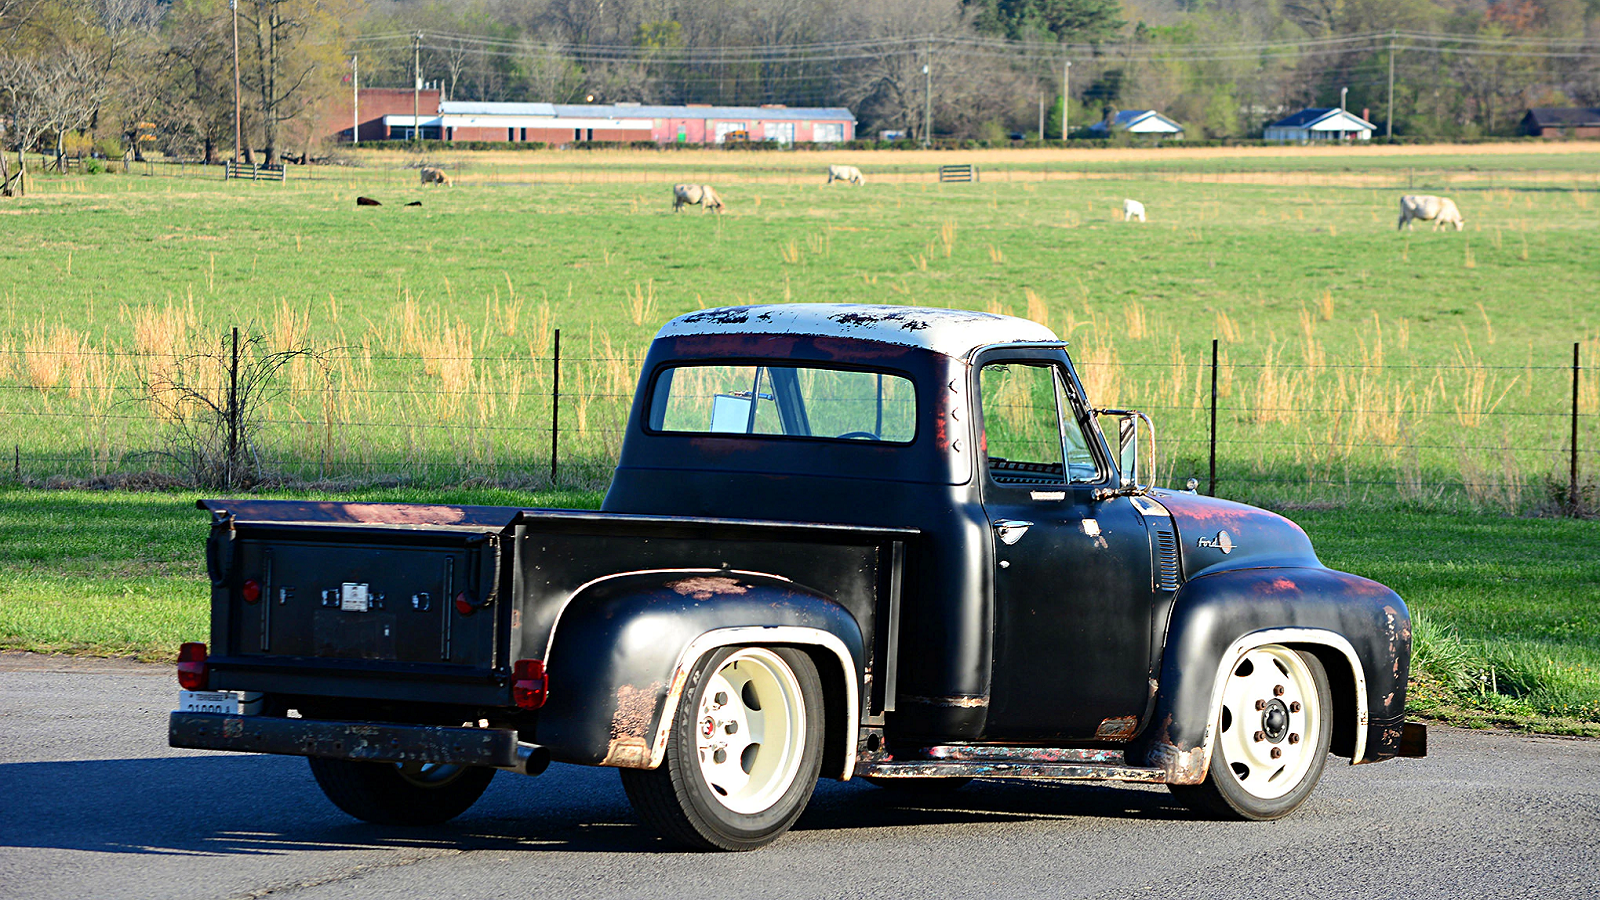 1955 Diesel-Powered F-100 Isn't Your Average Project Truck